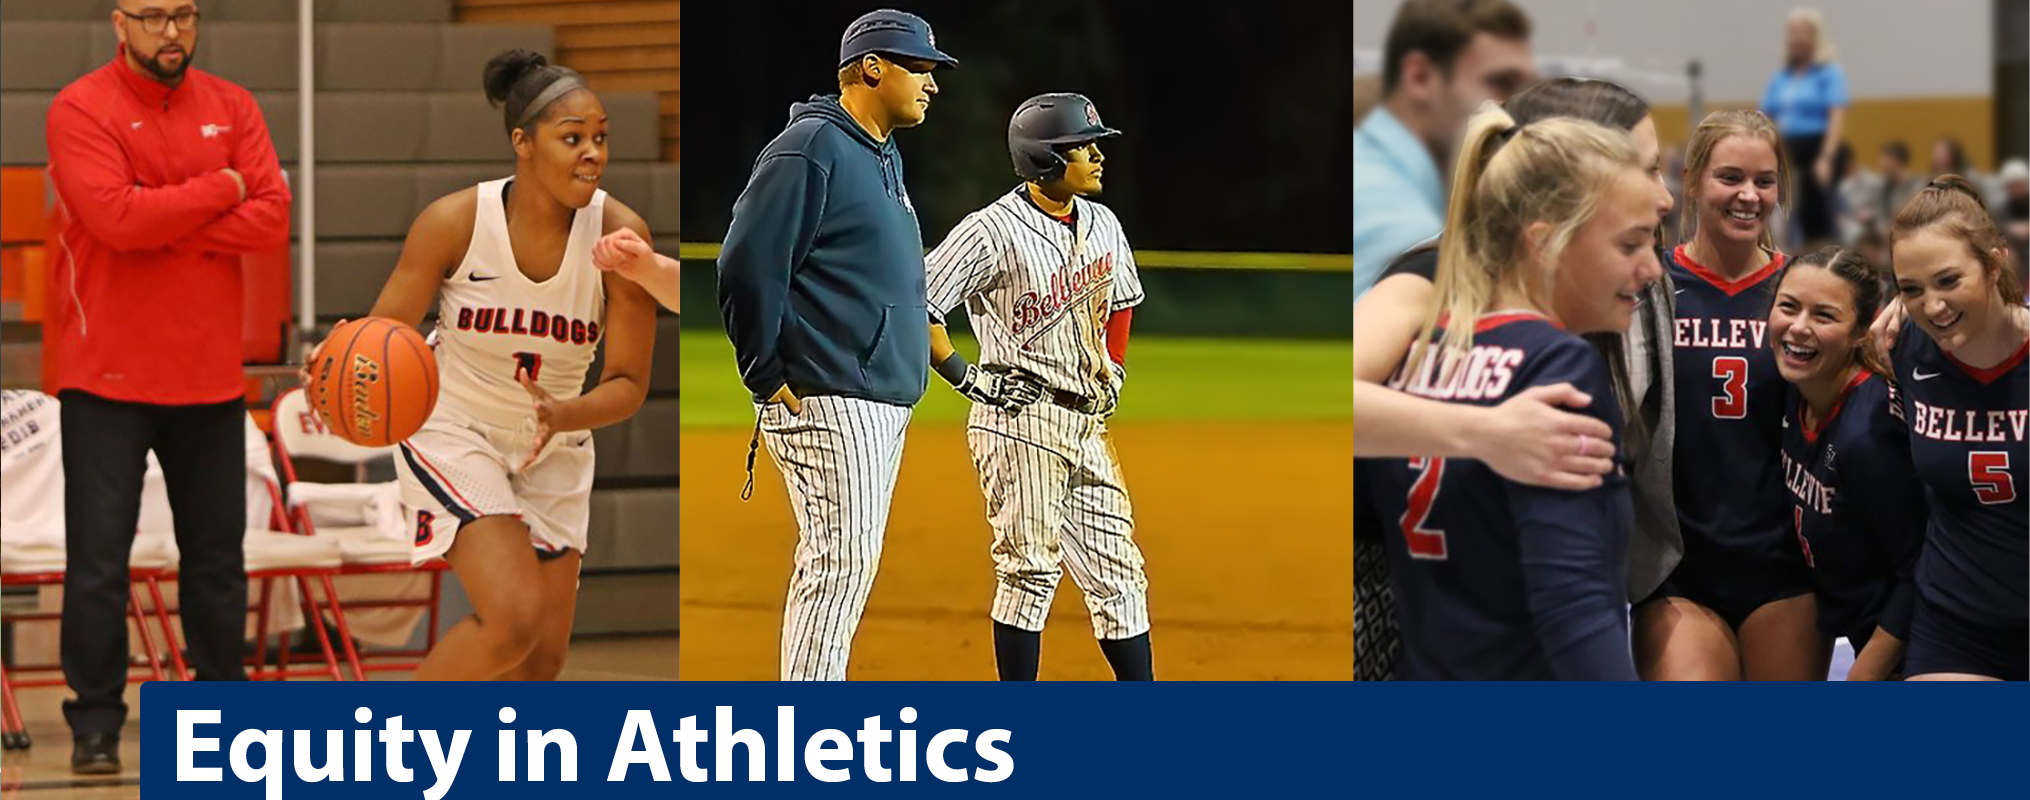 Equity in Athletics banner image